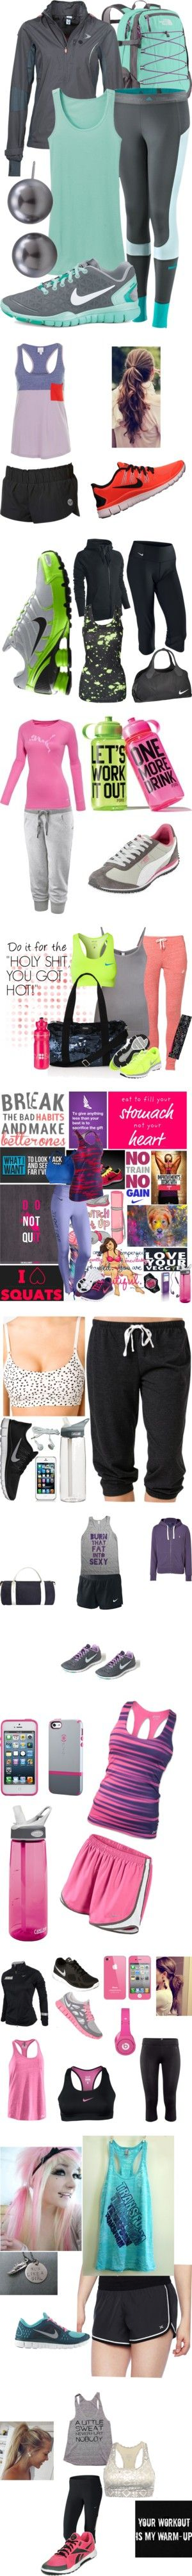 """I WoRk OuT!"" by dainty-ff on Polyvore  The only problem is that I only want to wear the clothes not work out in them."